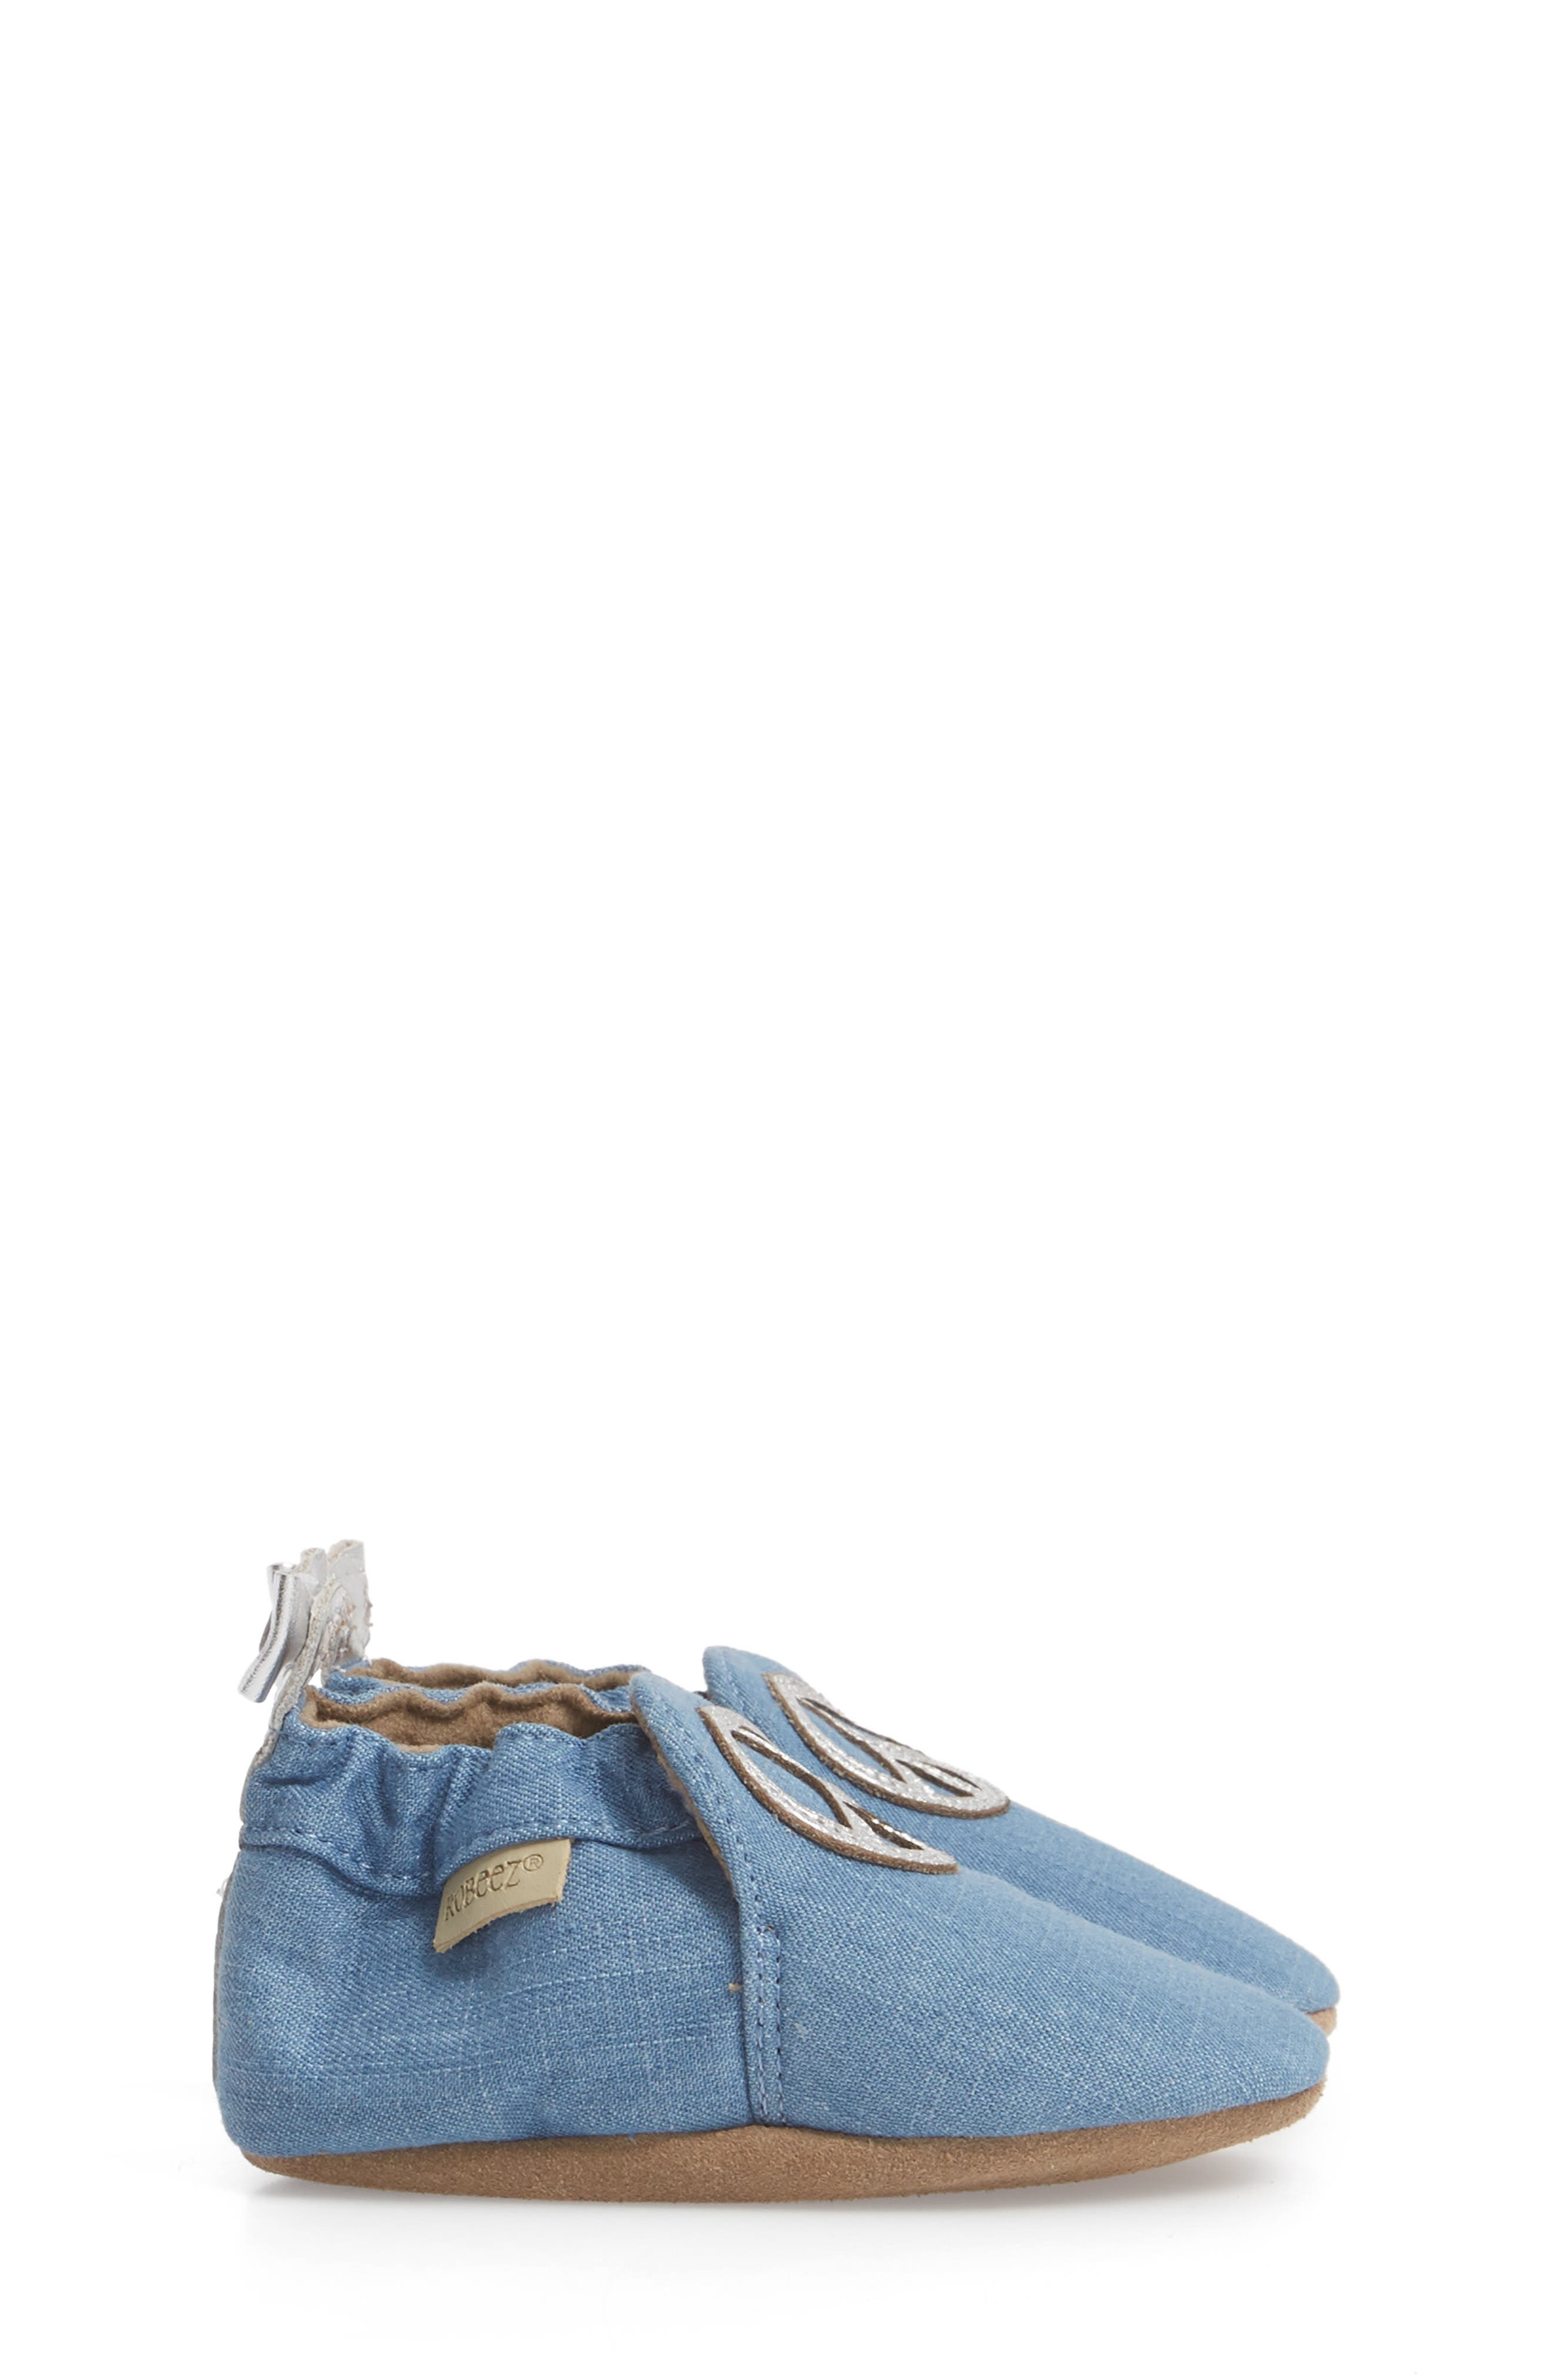 ROBEEZ<SUP>®</SUP>, Peace Out Moccasin Crib Shoe, Alternate thumbnail 3, color, BLUE